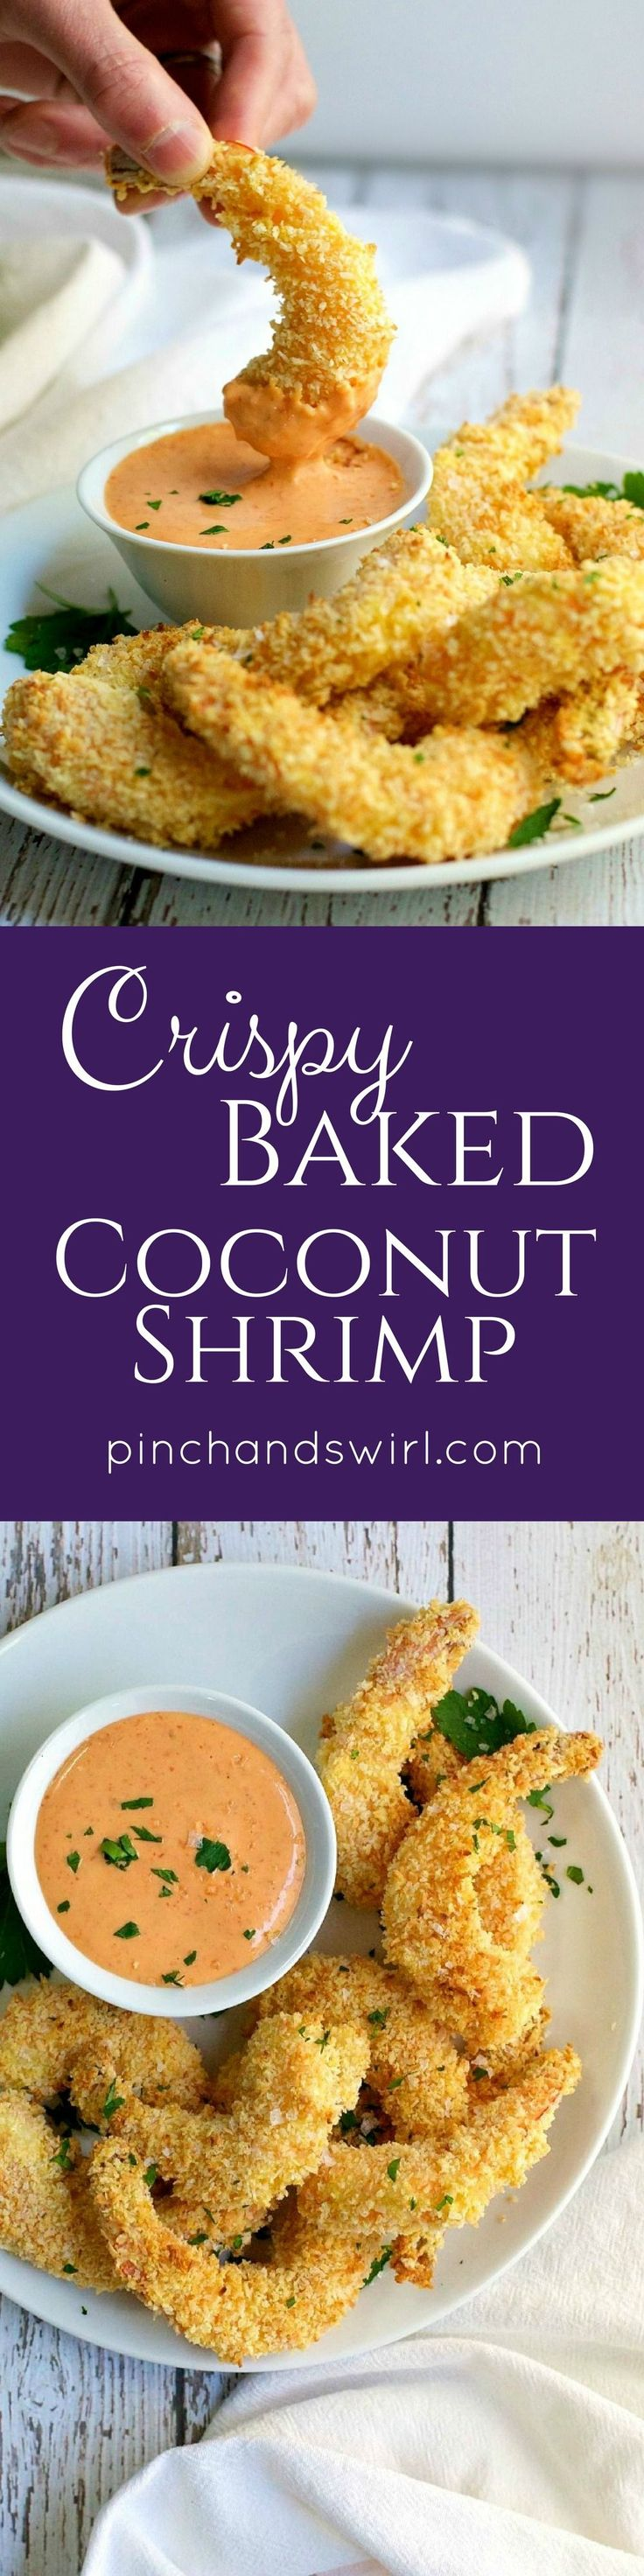 The secret to truly crispy baked coconut shrimp is in the breading. It's all about double toasting - toast the panko breadcrumbs and coconut before you bread the shrimp and let it crisp up again while the shrimp bakes. With this method, the breading adher